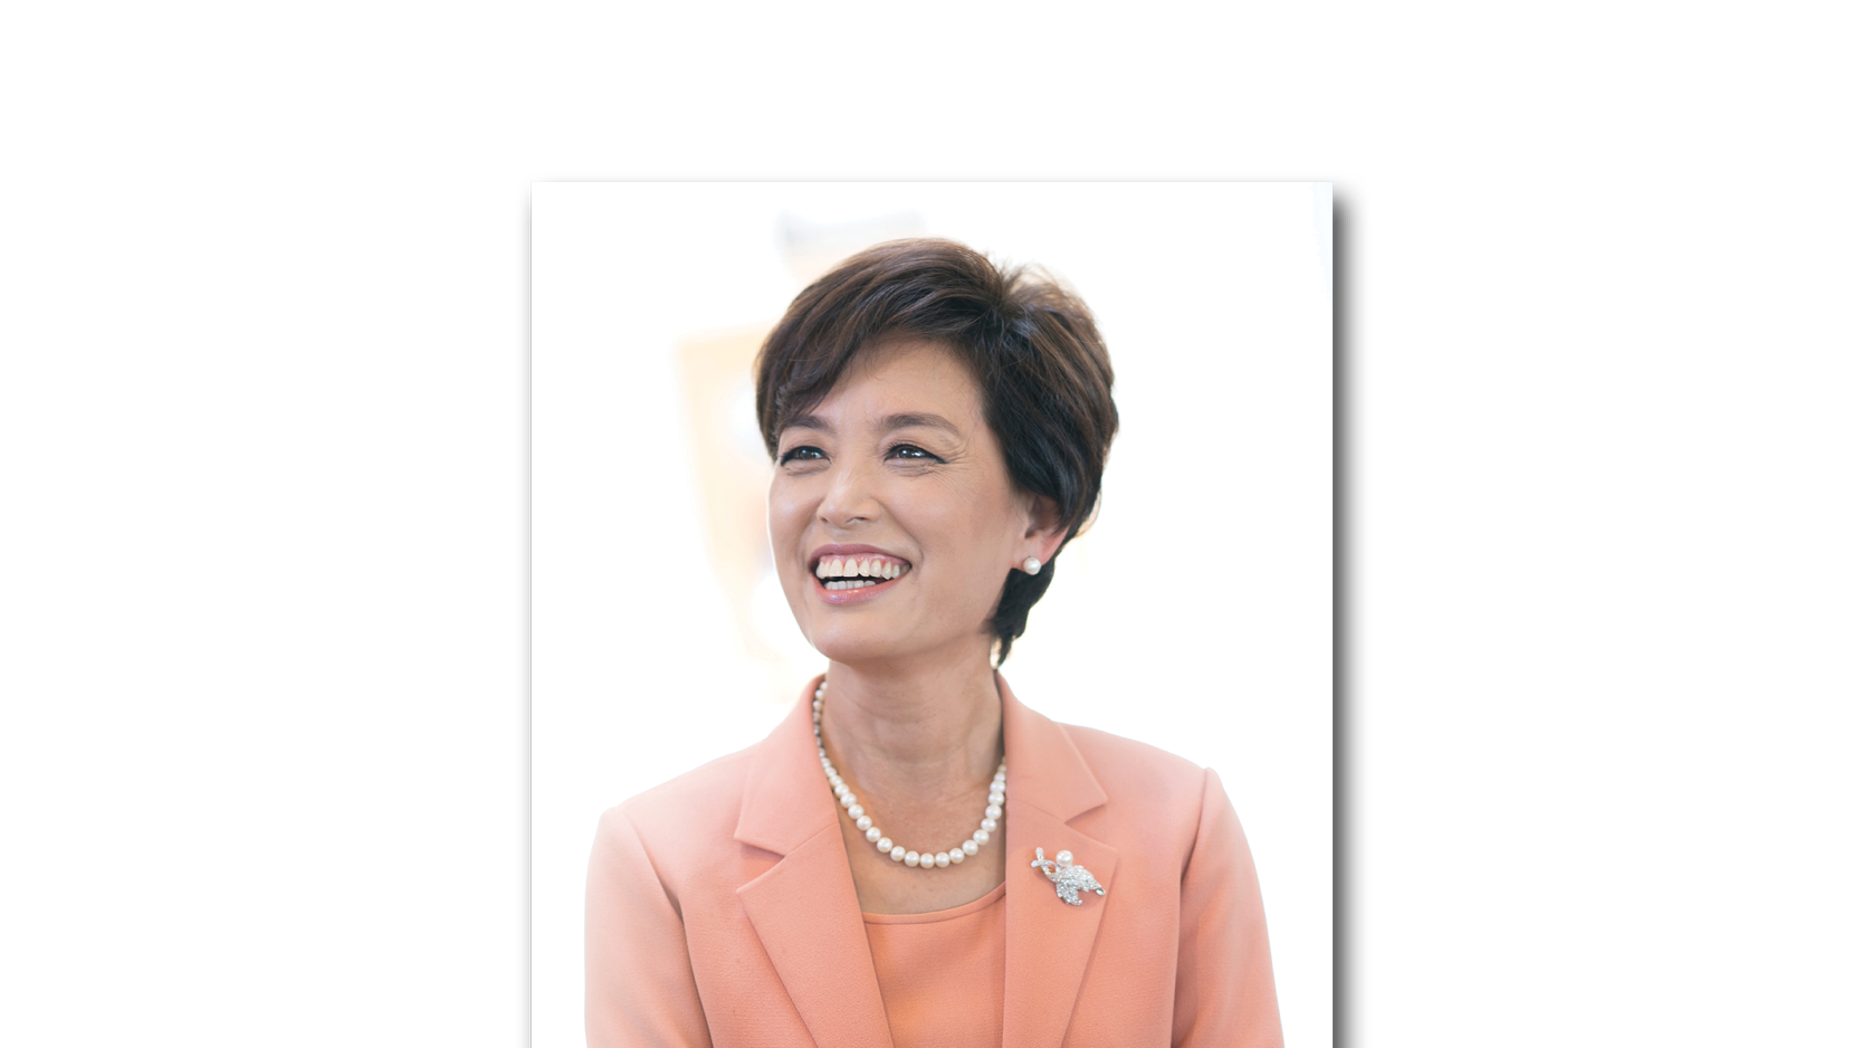 Young Kim, a former representative in the California State Assembly, is leading in California's 39th Congressional District race, a new poll says.